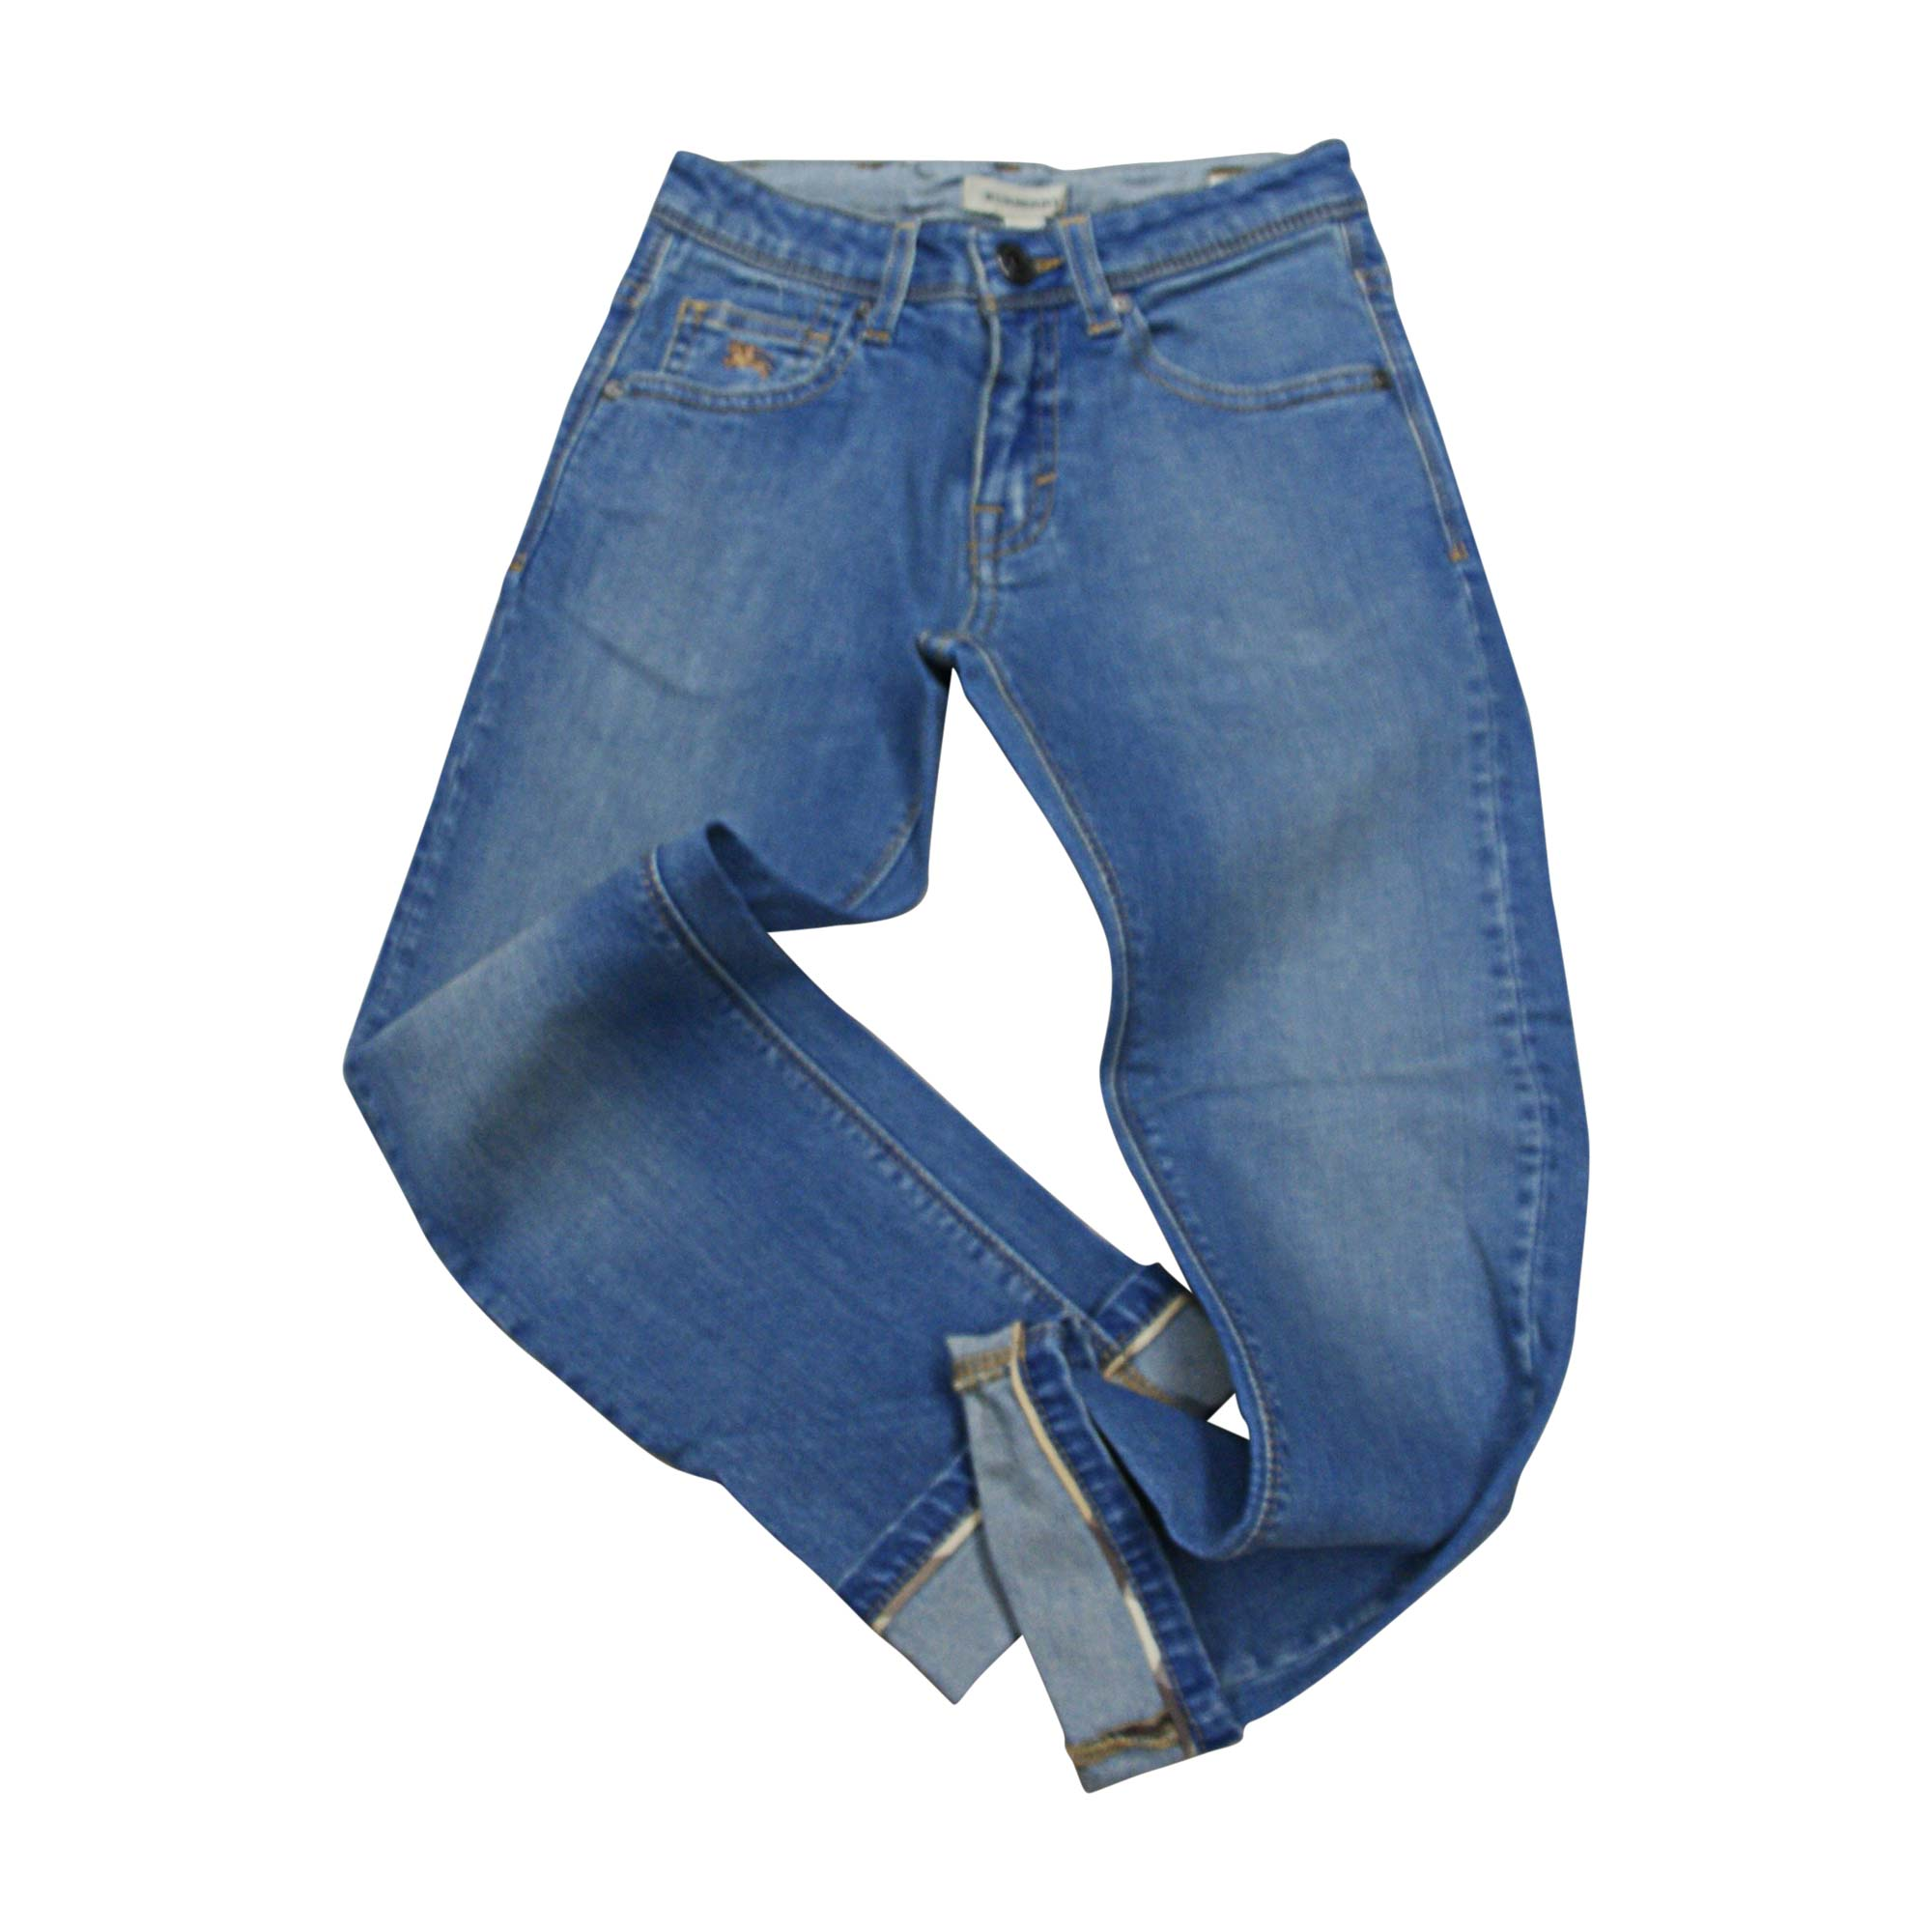 Straight Leg Jeans BURBERRY Blue, navy, turquoise